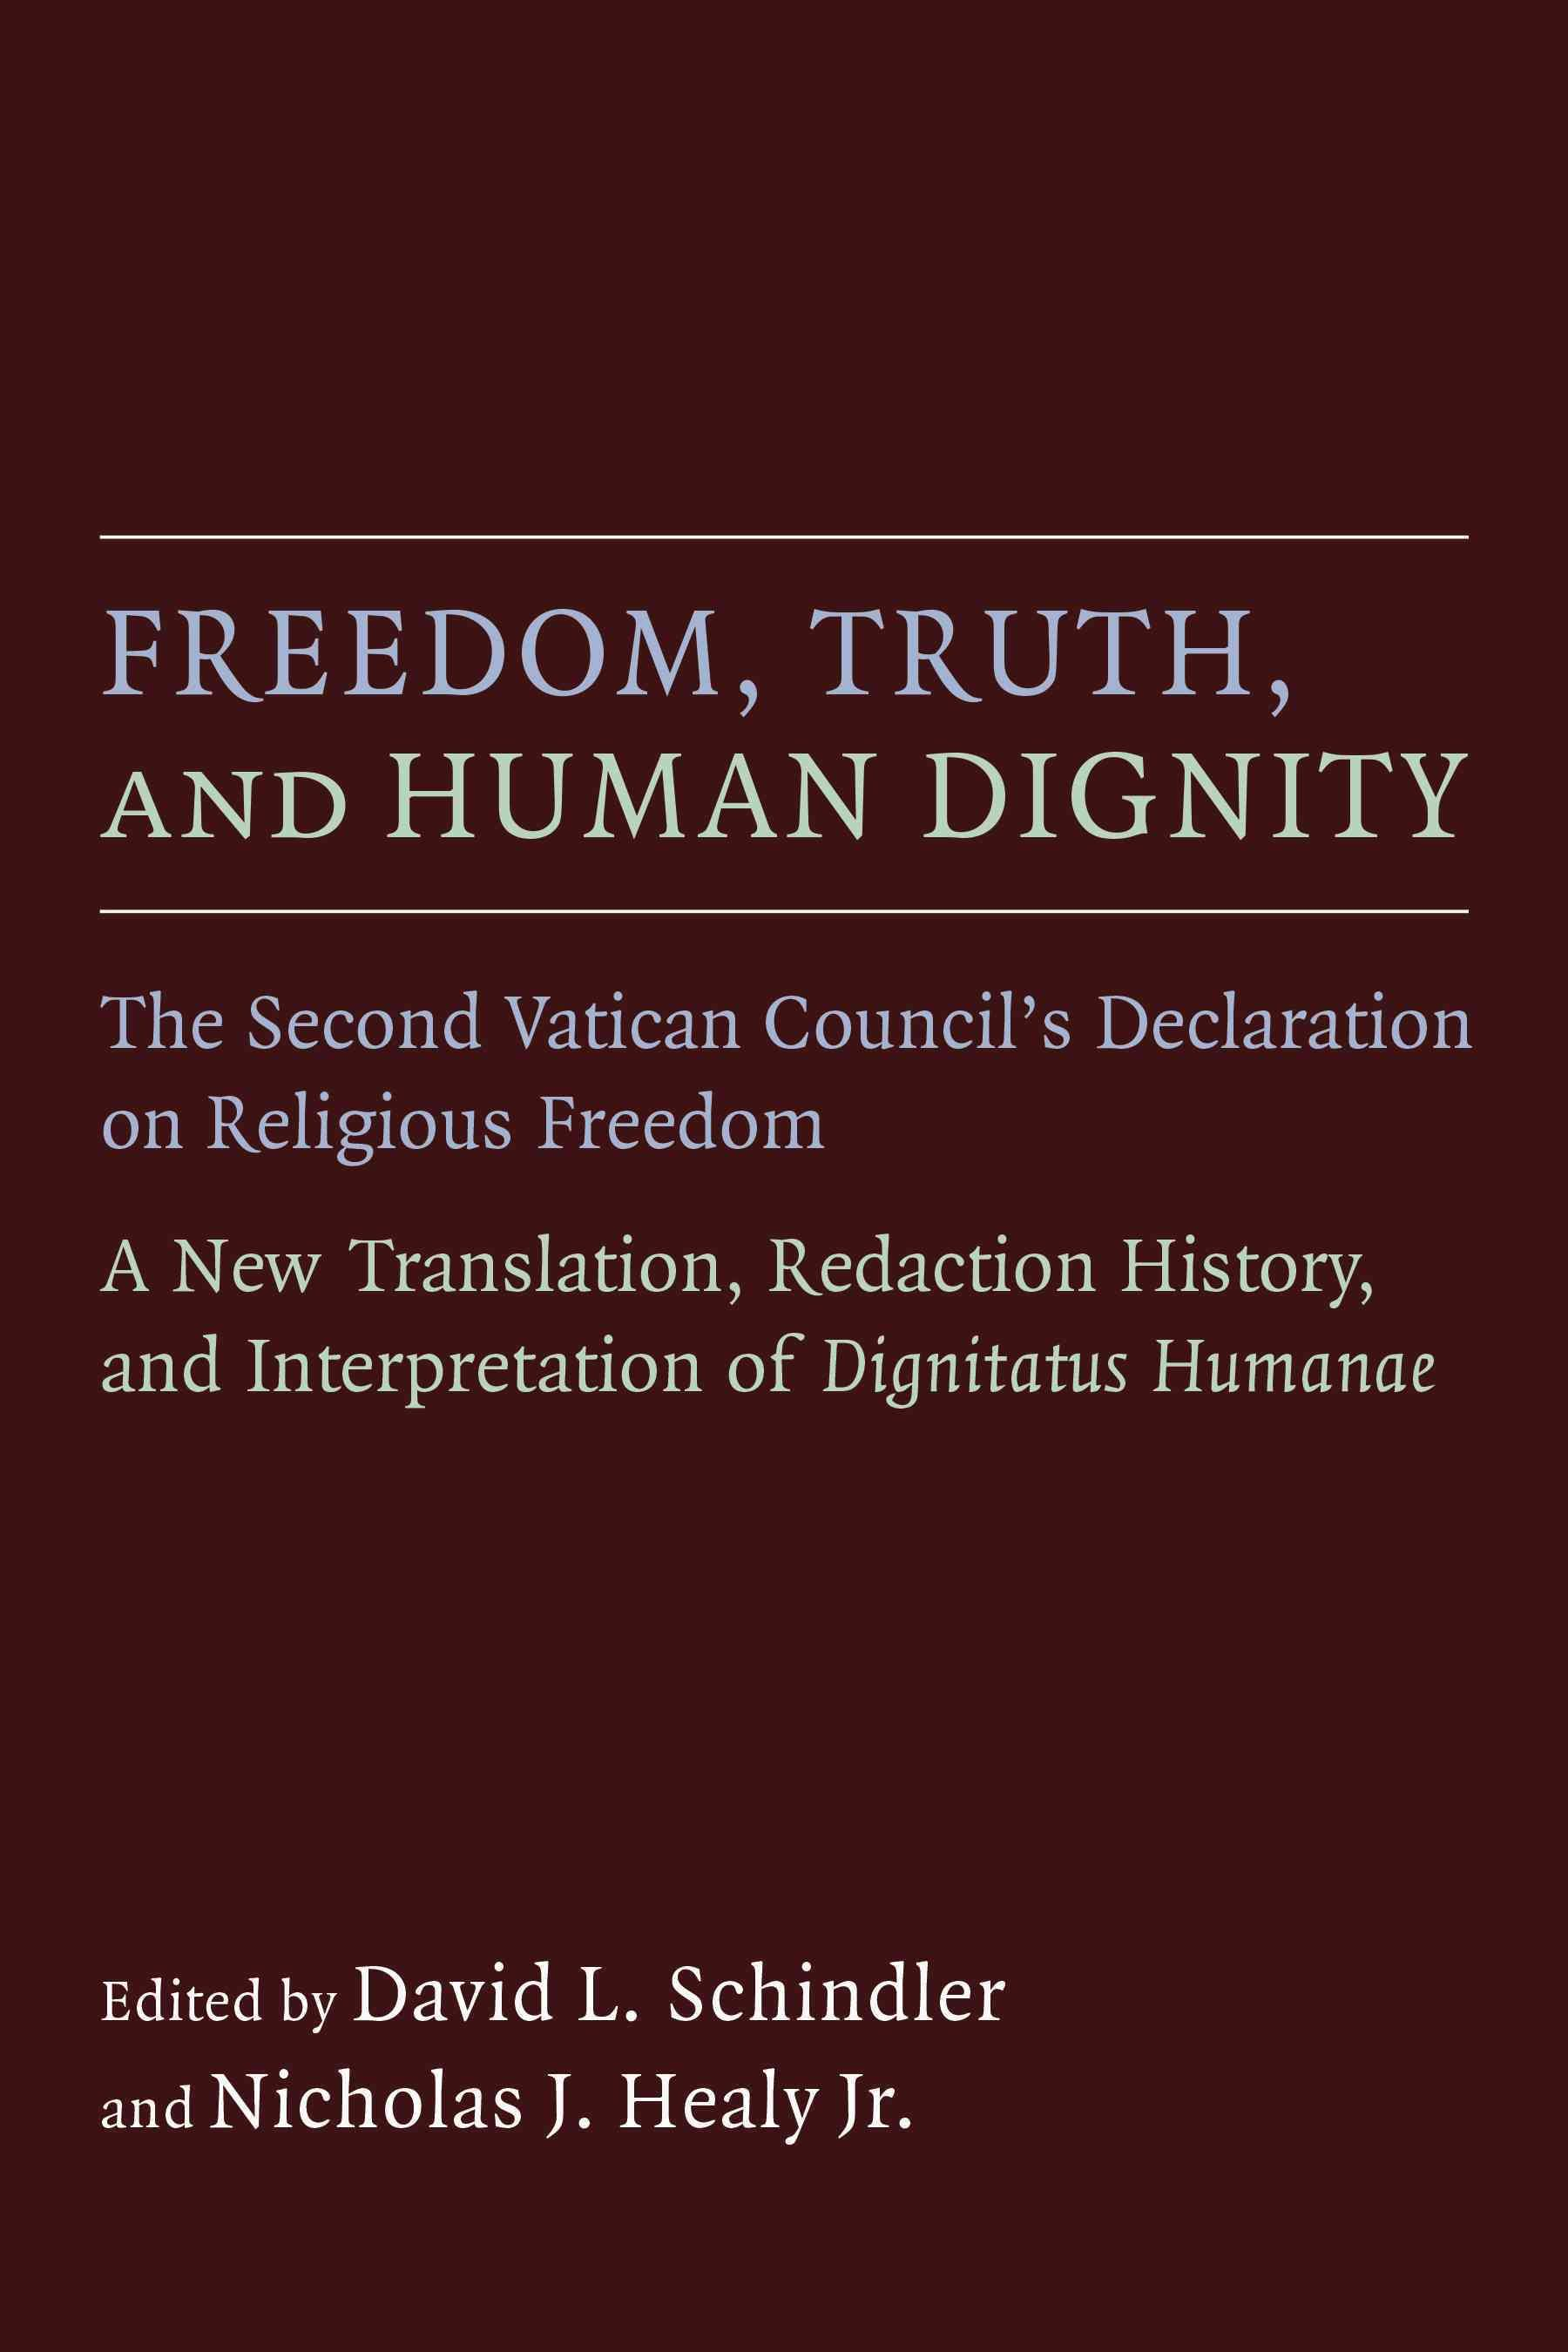 Freedom, Truth, and Human Dignity: The Second Vatican Council's Declaration on Religious Freedom